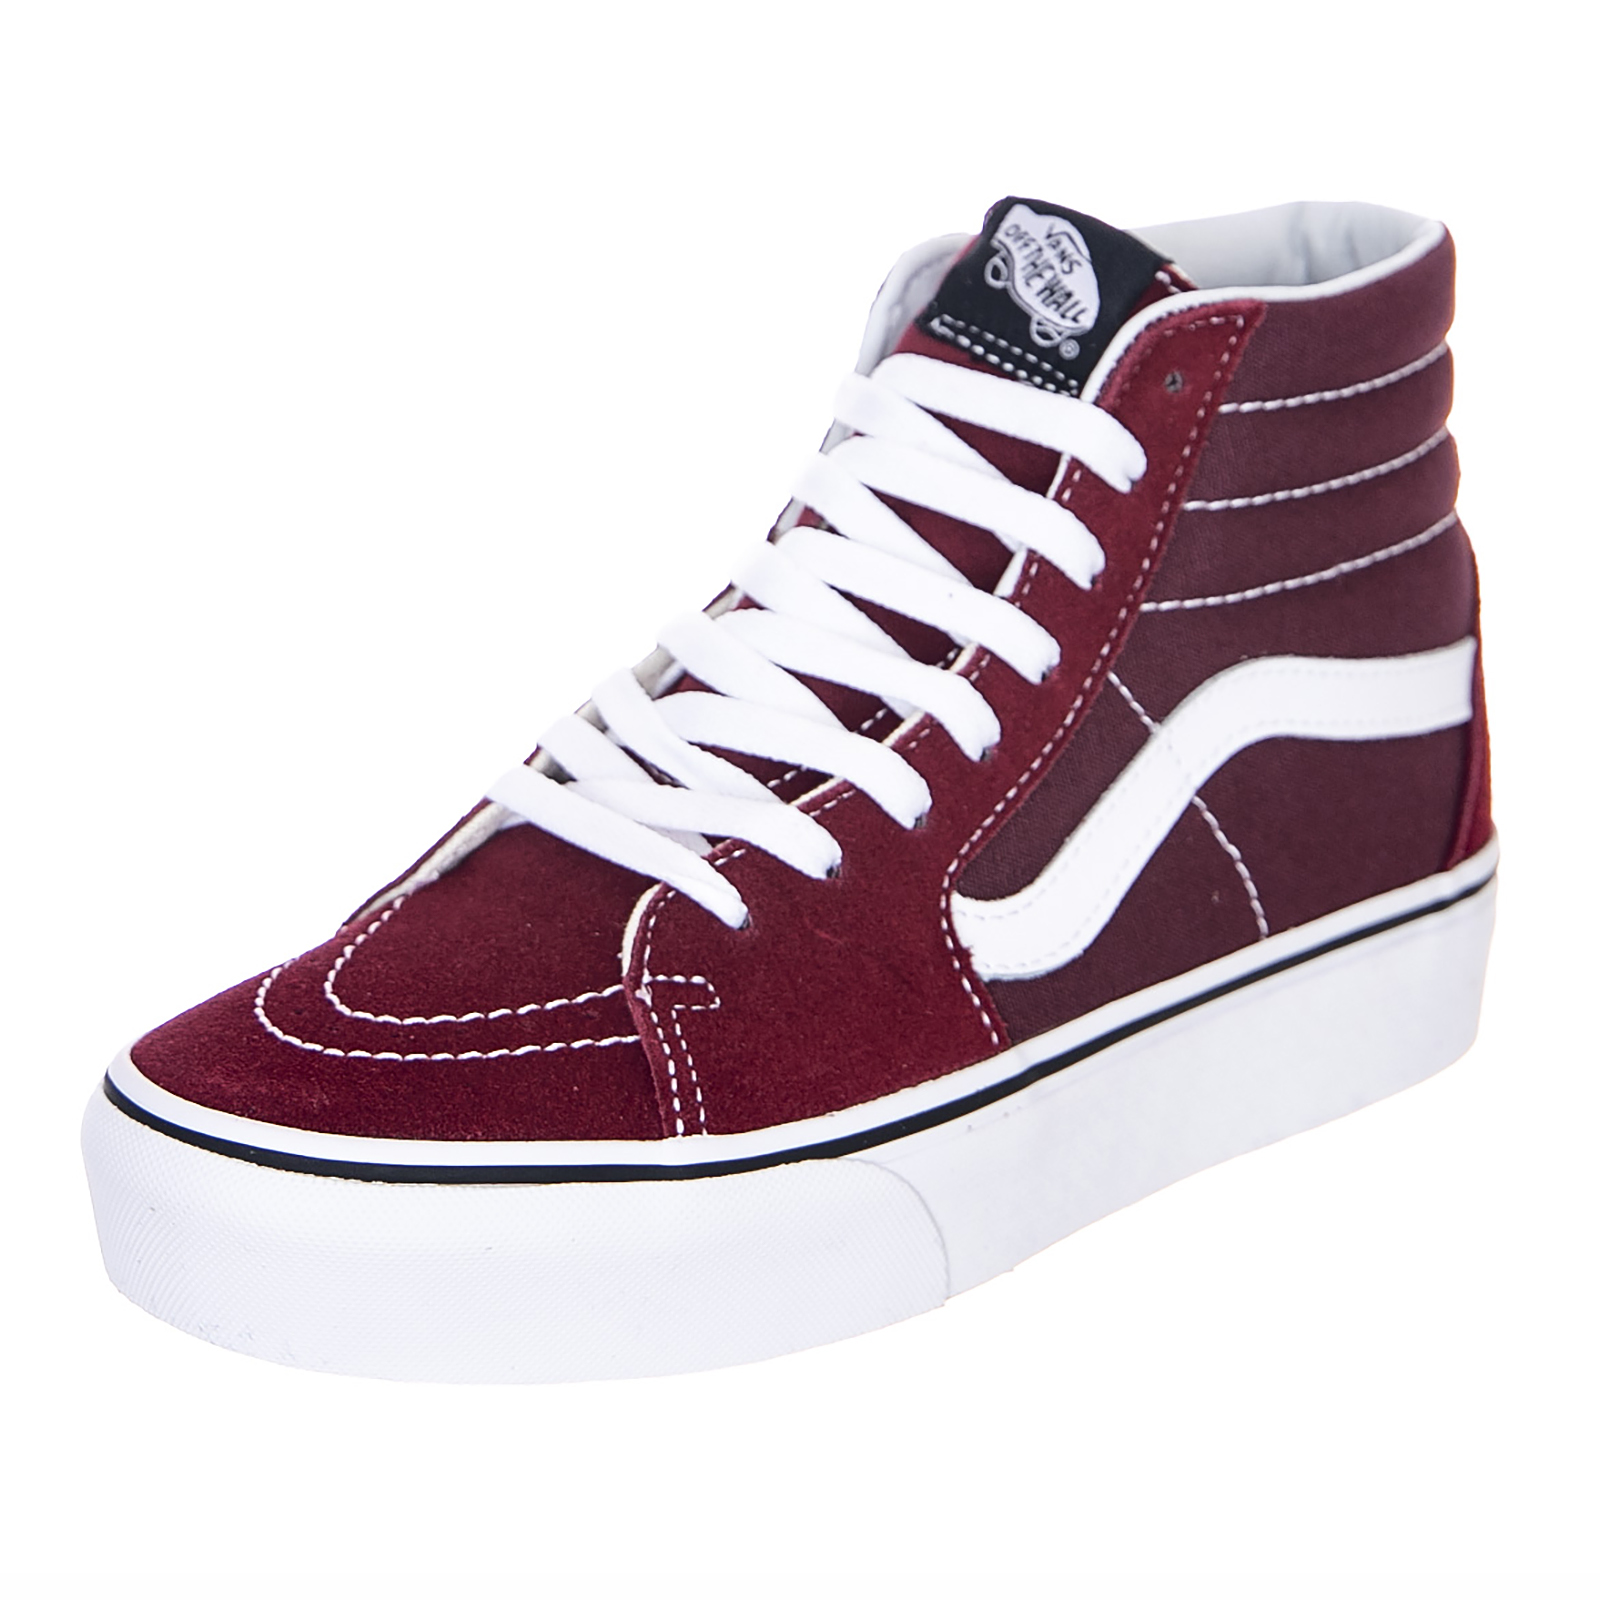 best sneakers a4b4b e4f5d vans bordeaux donna